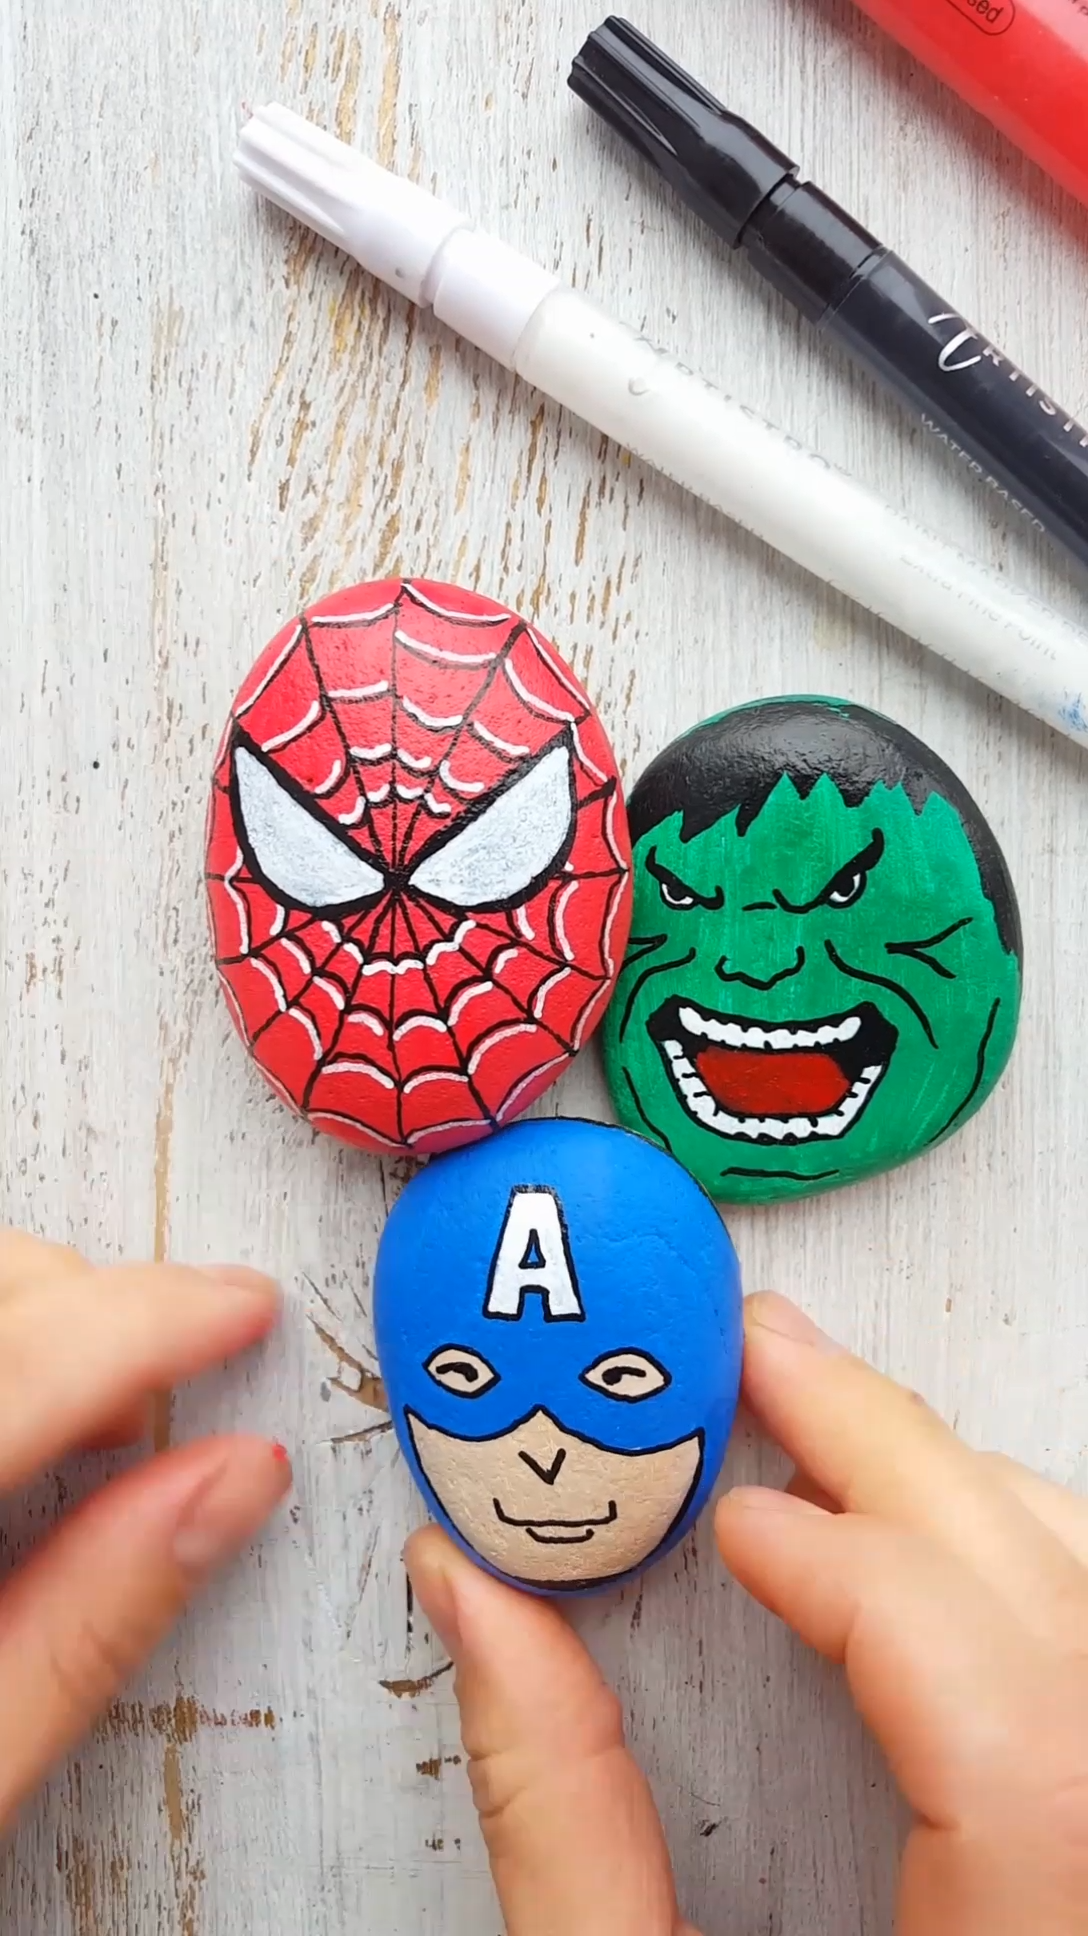 Artistro Rock Painting Kit - Art Set for Kids and